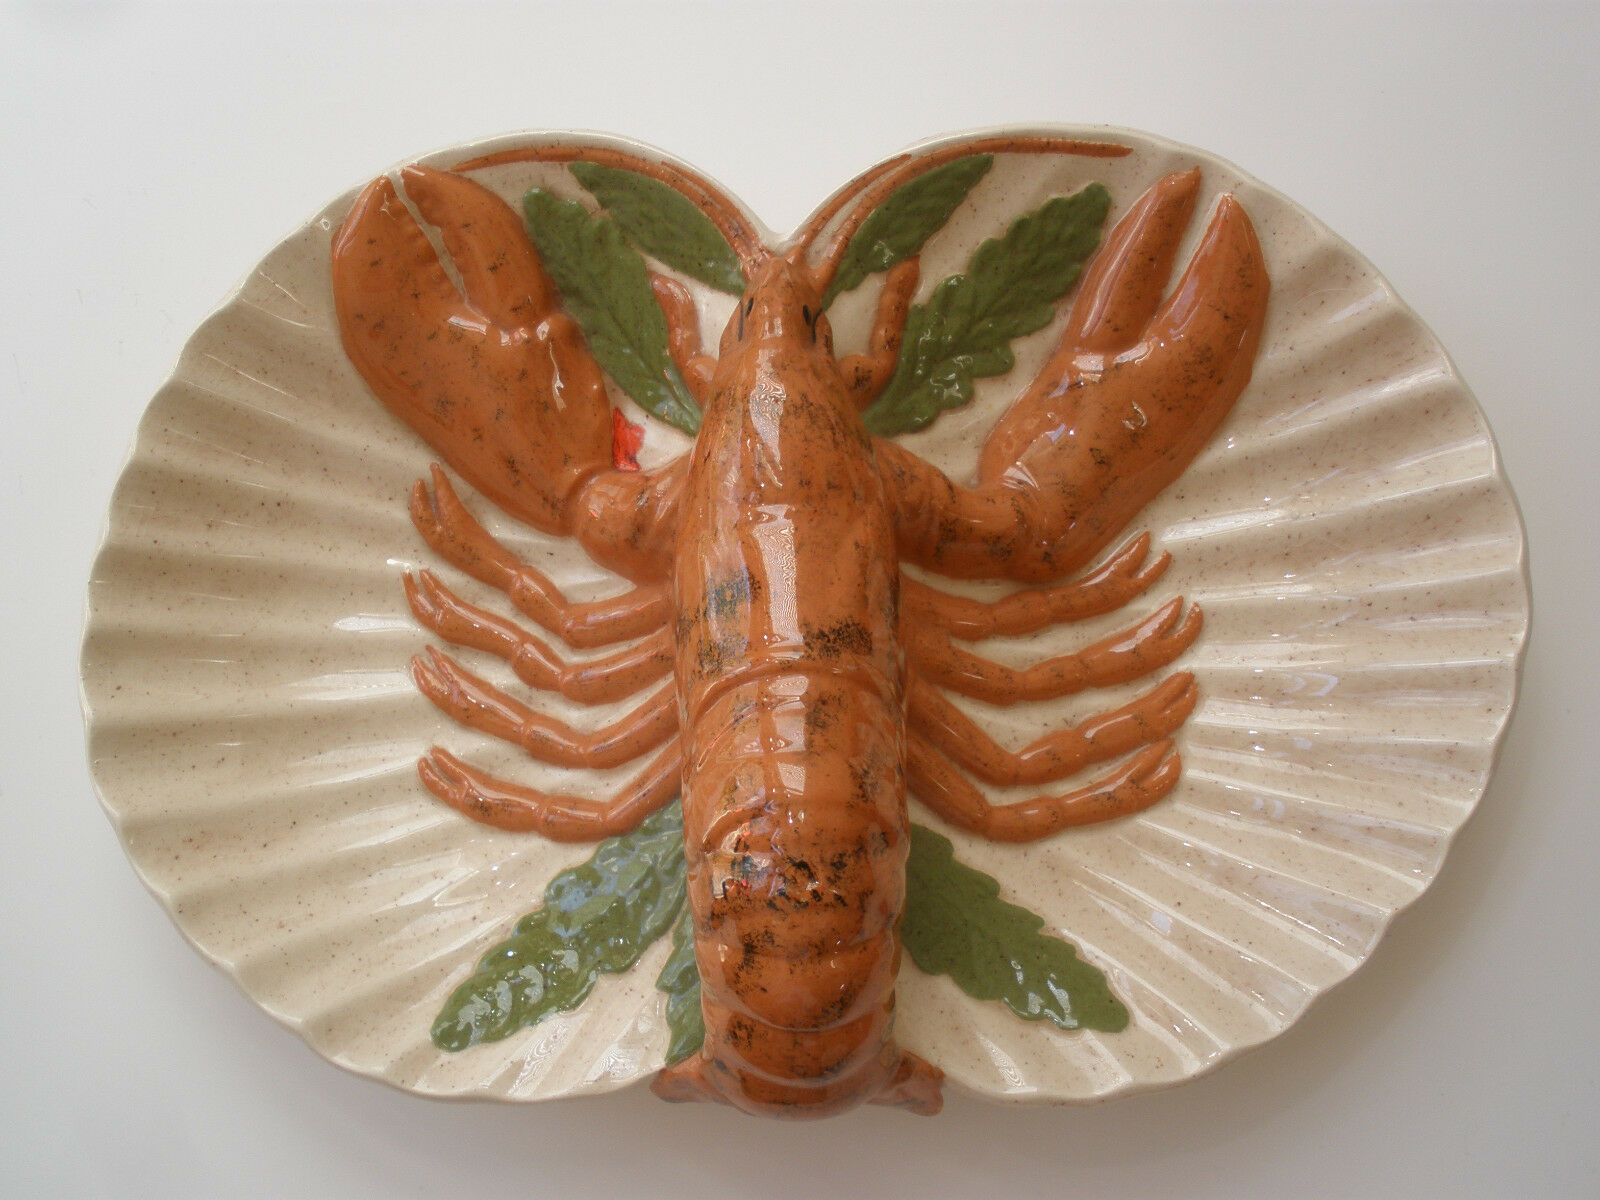 LARGE LOBSTER CERAMIC PLATTER UNIQUE HOLLAND MOLD 1980 VINTAGE DECOR MADE IN USA